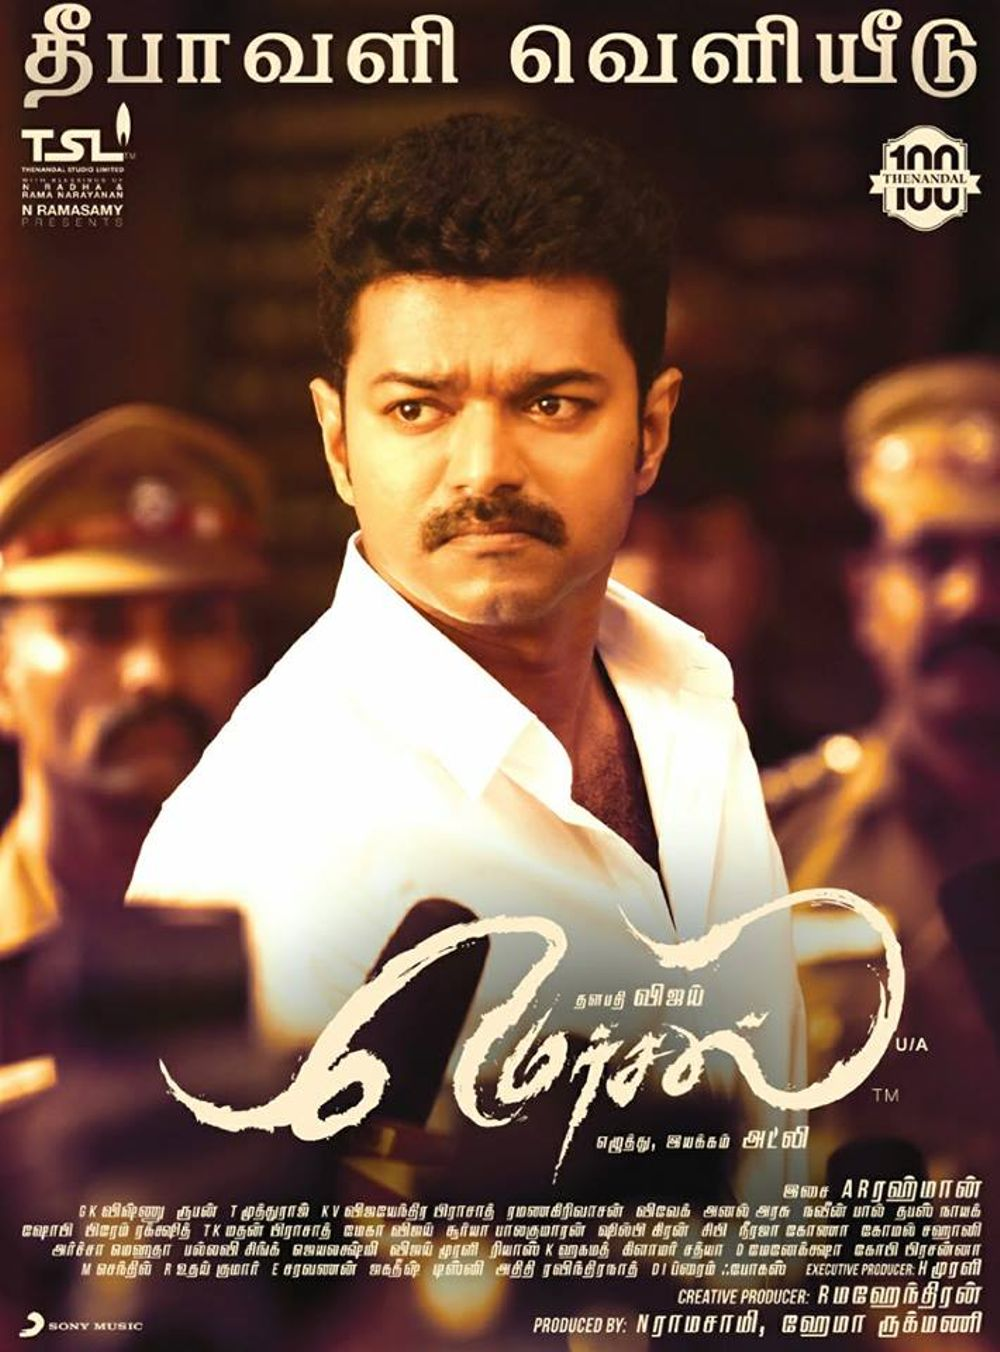 Mersal Movie Review (2017) - Rating, Cast & Crew With Synopsis